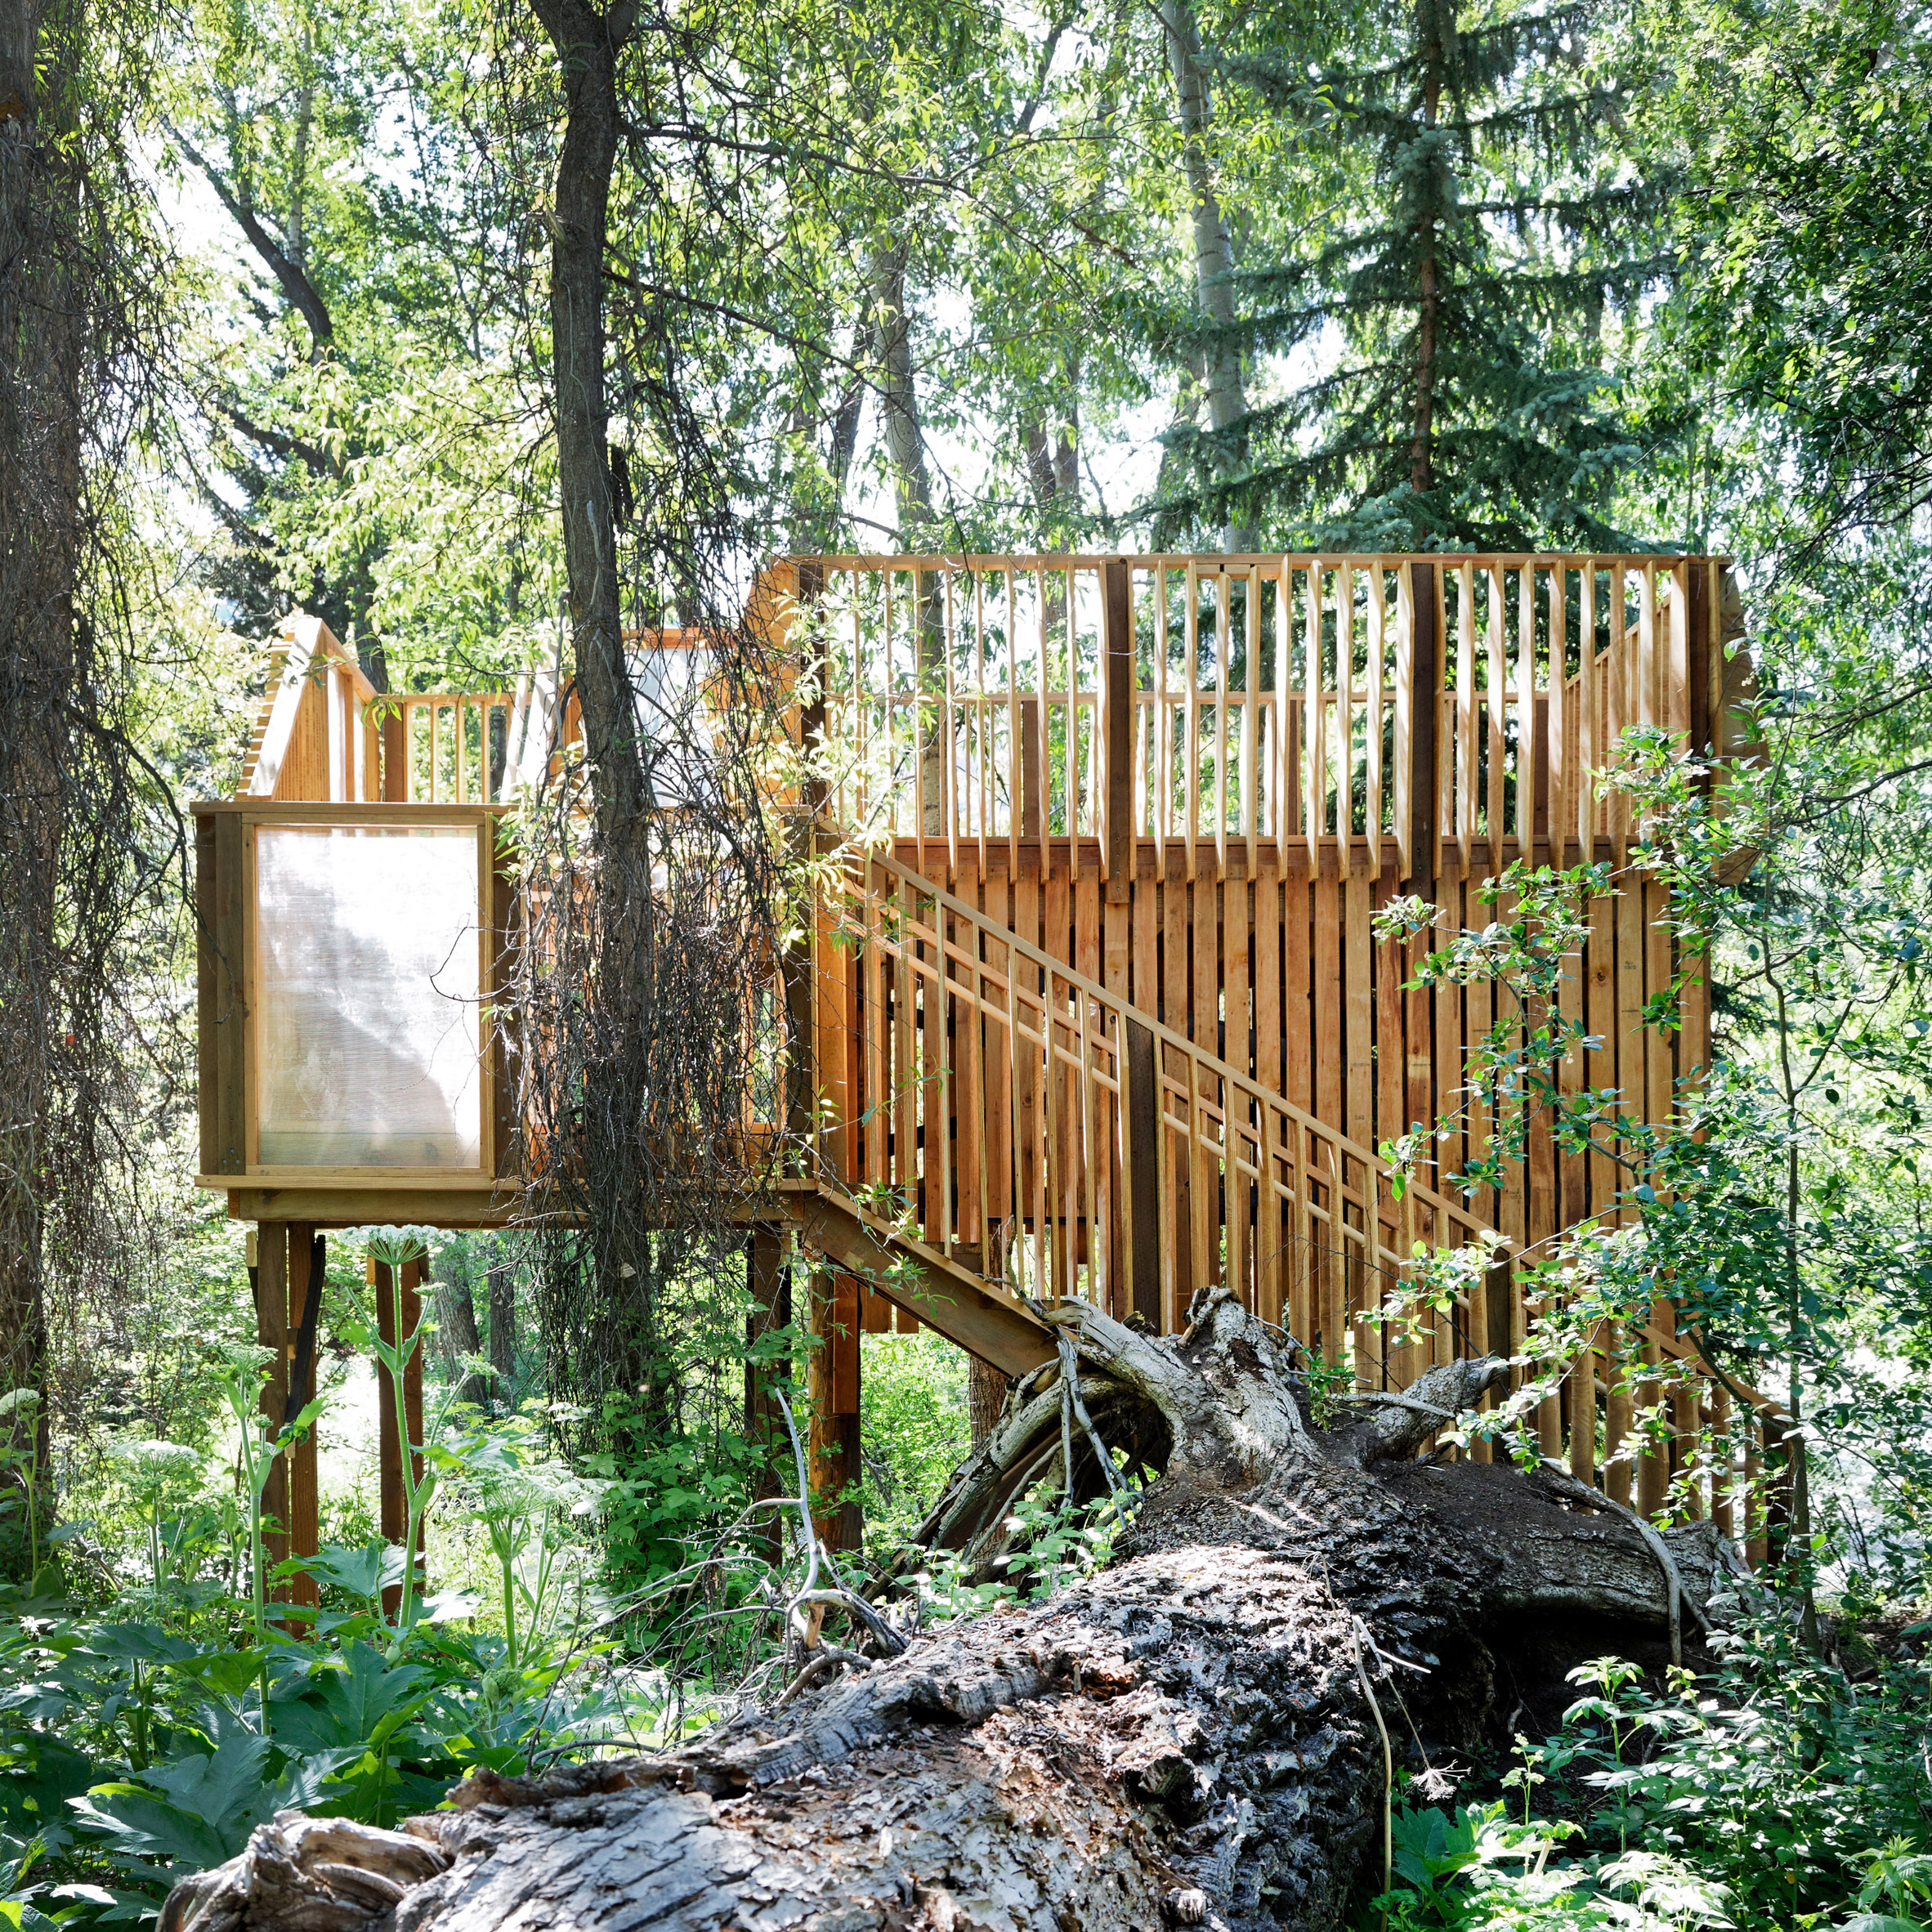 Charles Cunniffe Spruces Up Treehouse In Aspen With Local Assistance